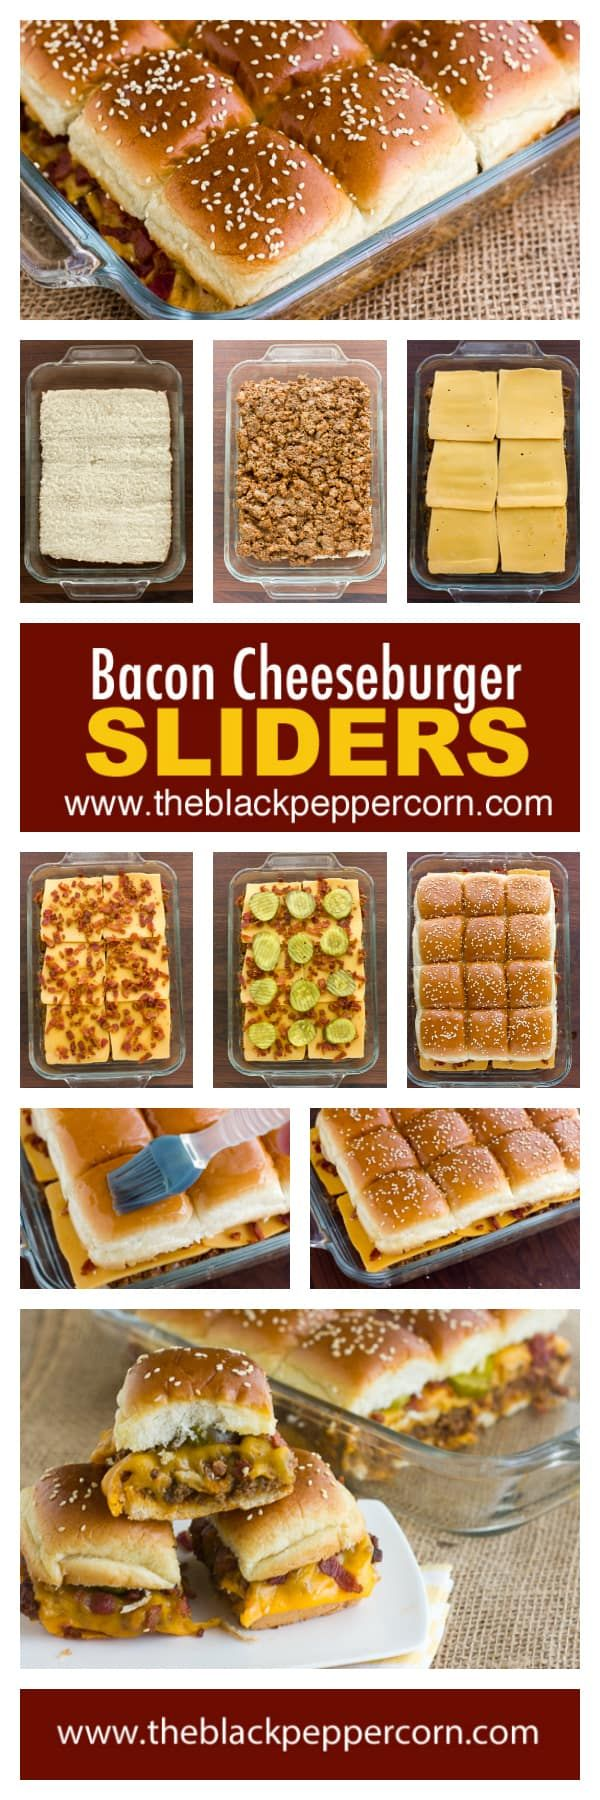 Bacon Cheeseburger Sliders Recipe - Make mini bacon cheeseburger sliders at home with 12 pack dinner rolls (ex: King's Hawaiian) and using ground beef, bacon, cheddar cheese, ketchup and mustard. via @blackpeppercorn